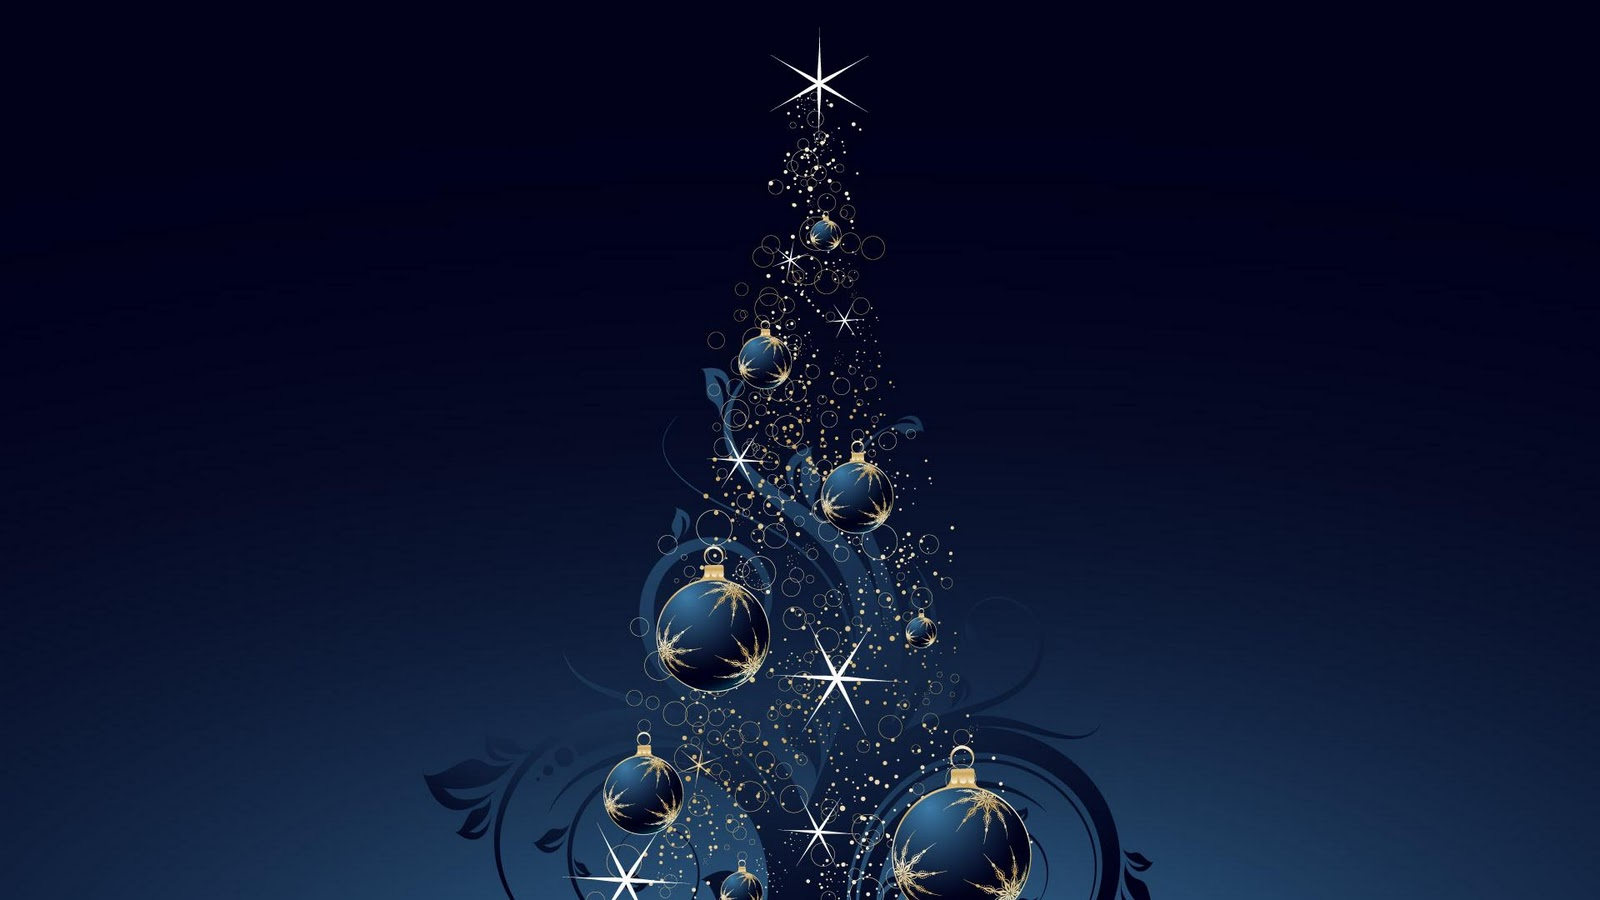 Free Wallpaper: New Year and Christmas Wallpapers